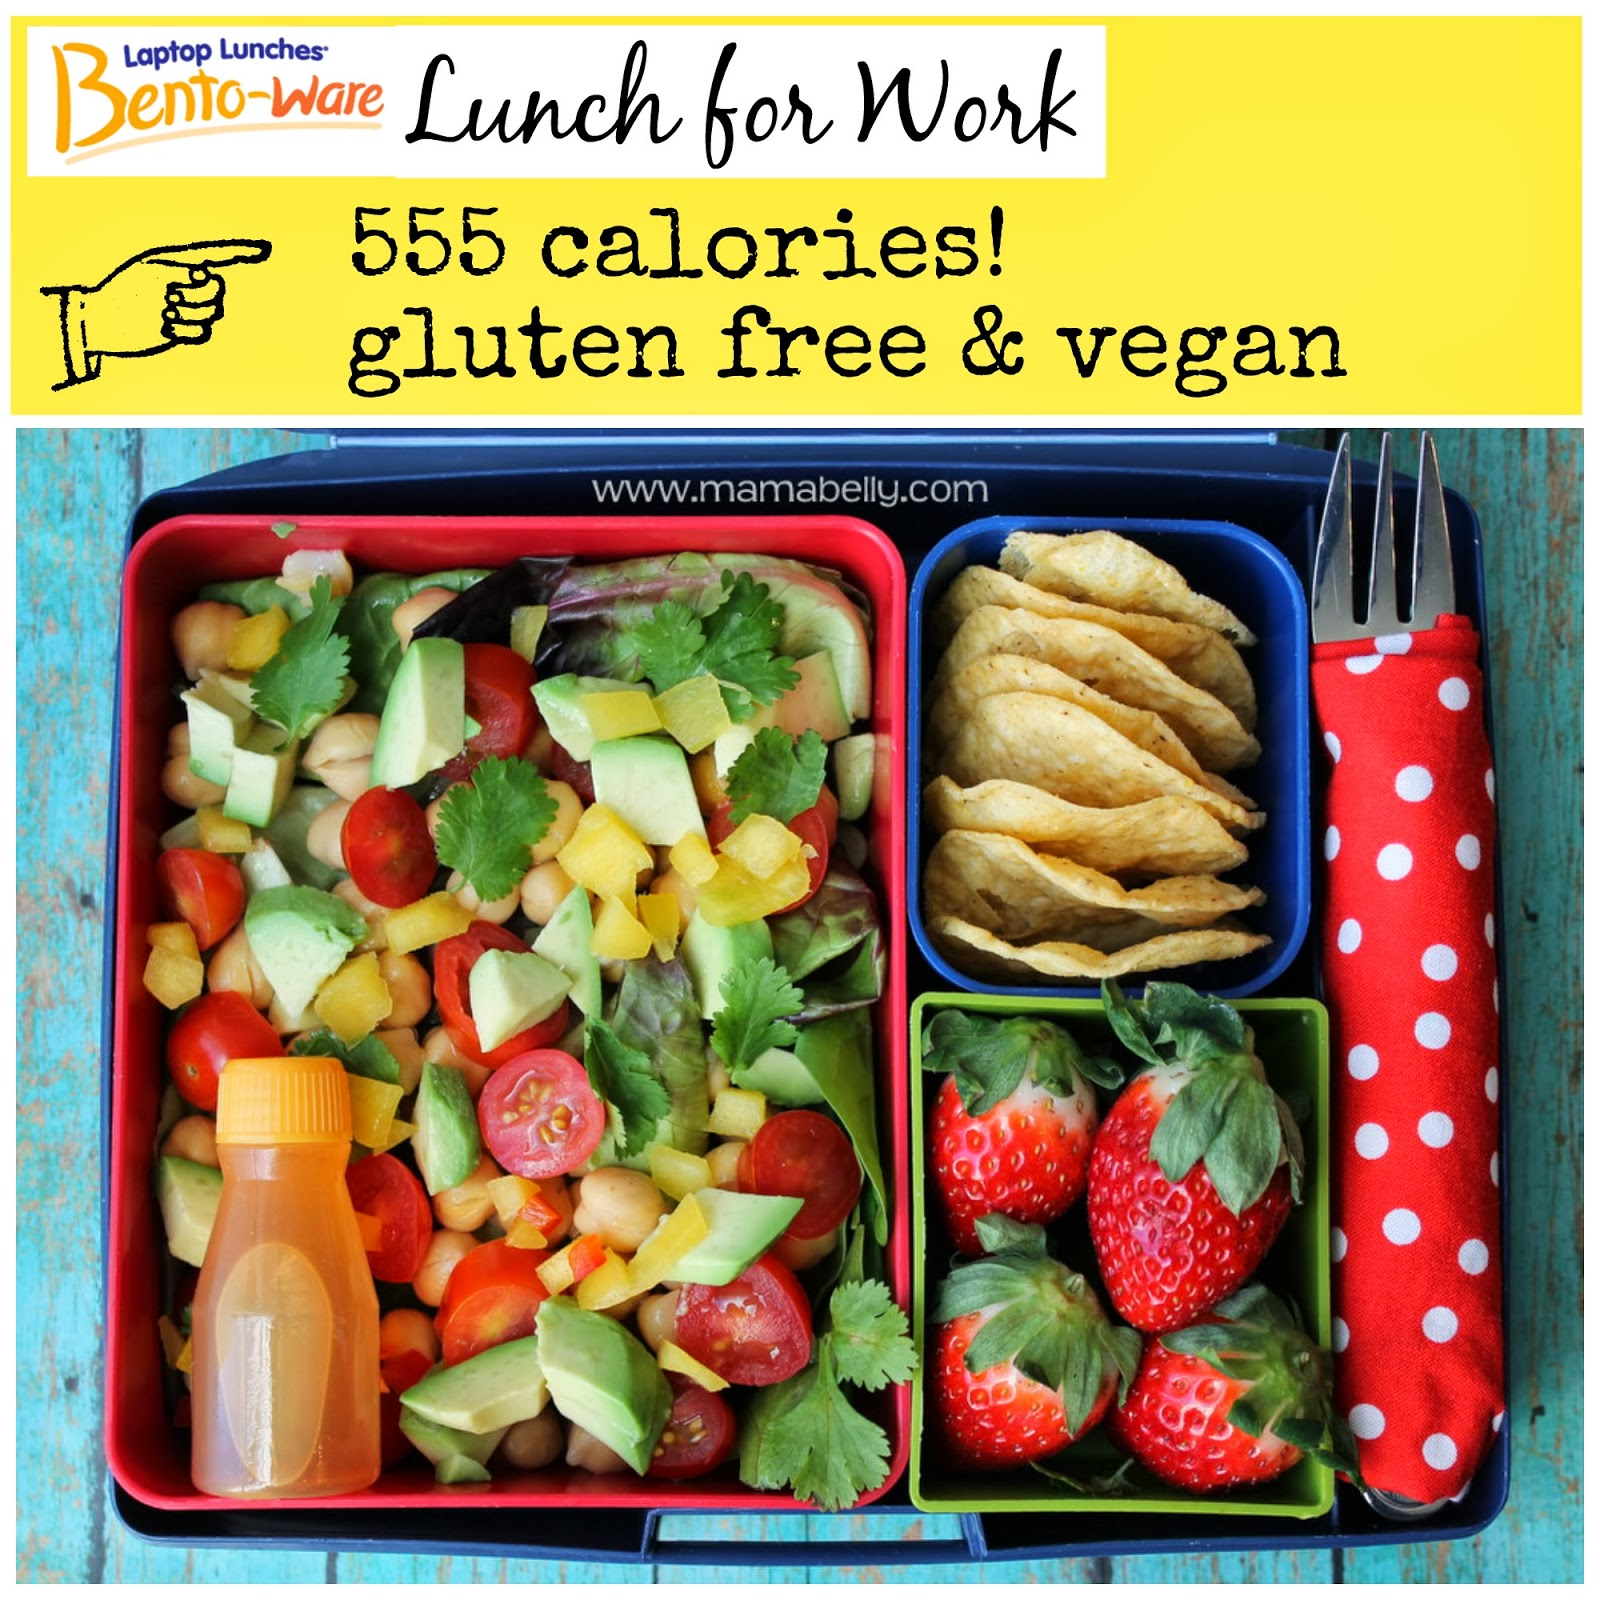 Vegan and Gluten Free Lunch for Work in Laptop Lunches - mamabelly.com